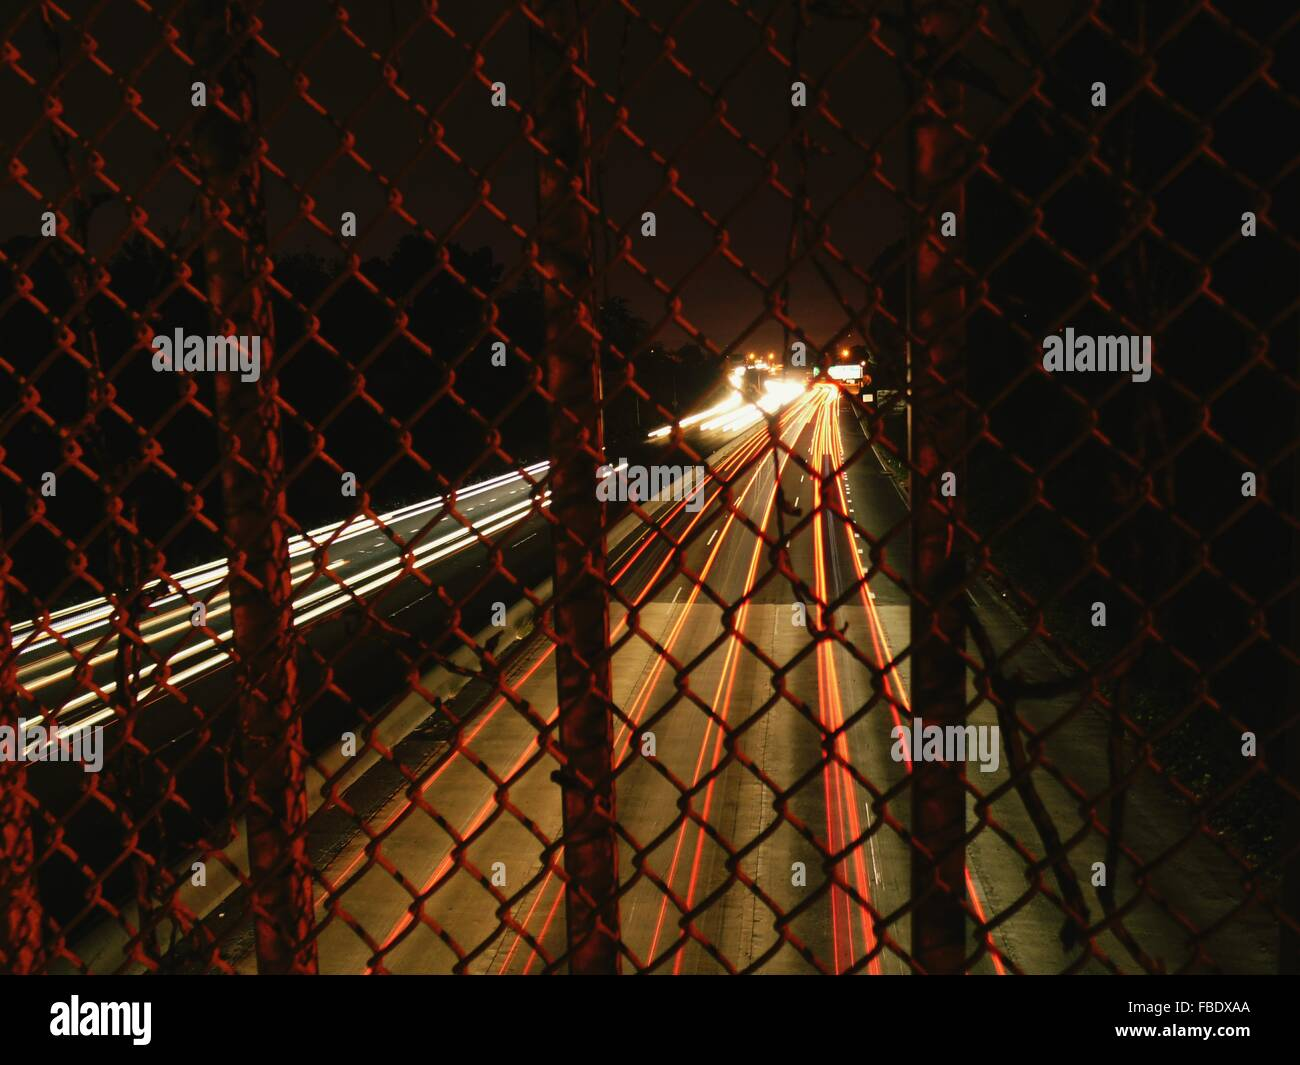 Illuminated Vehicle Light Trails On Highway Seen From Chainlink Fence - Stock Image